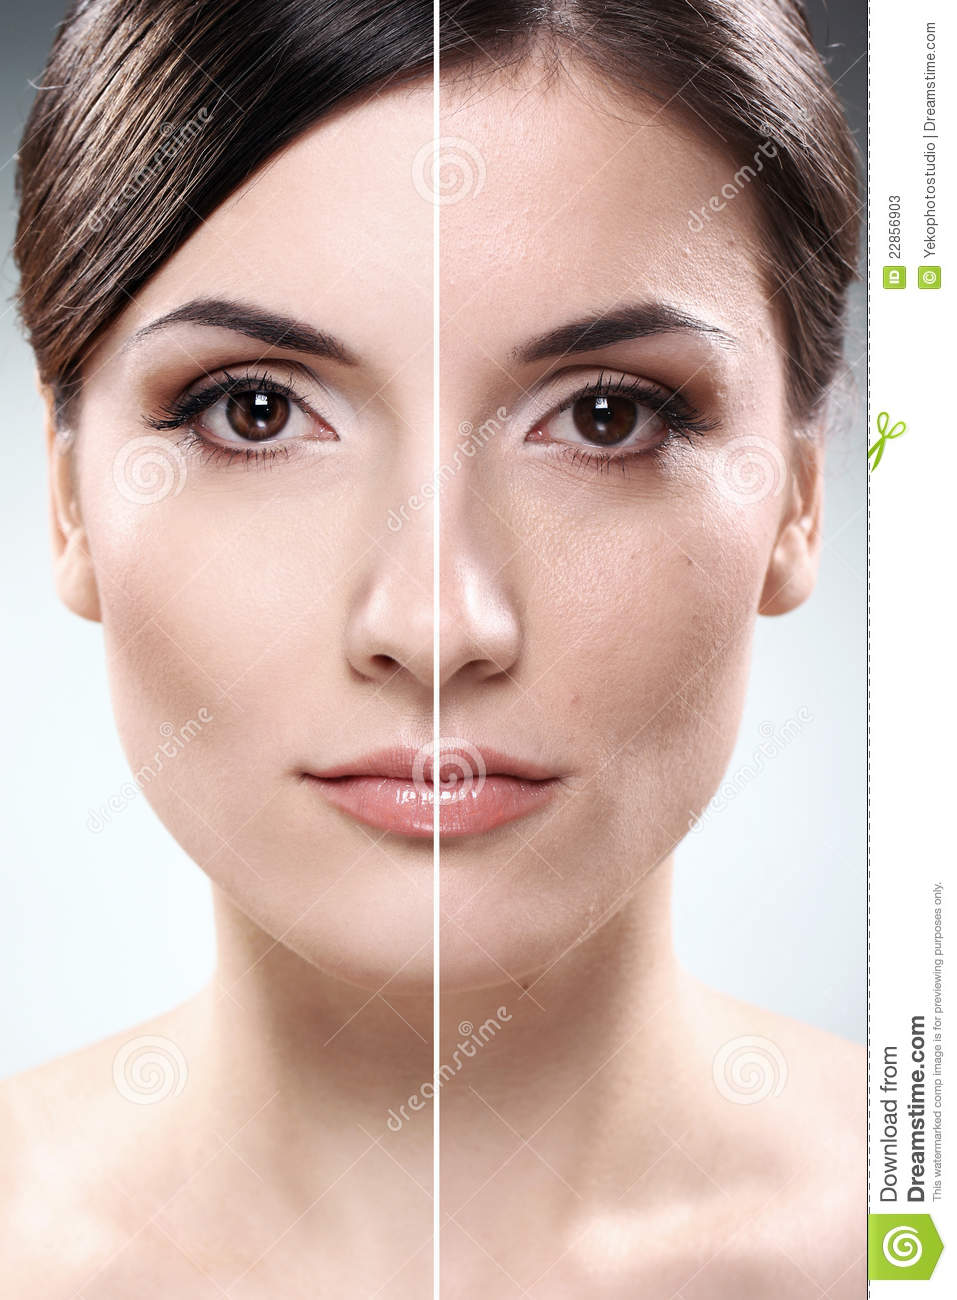 Before And After Bathroom Updates From Rate My Space: Face Of Woman Before And After Retouch Stock Photos